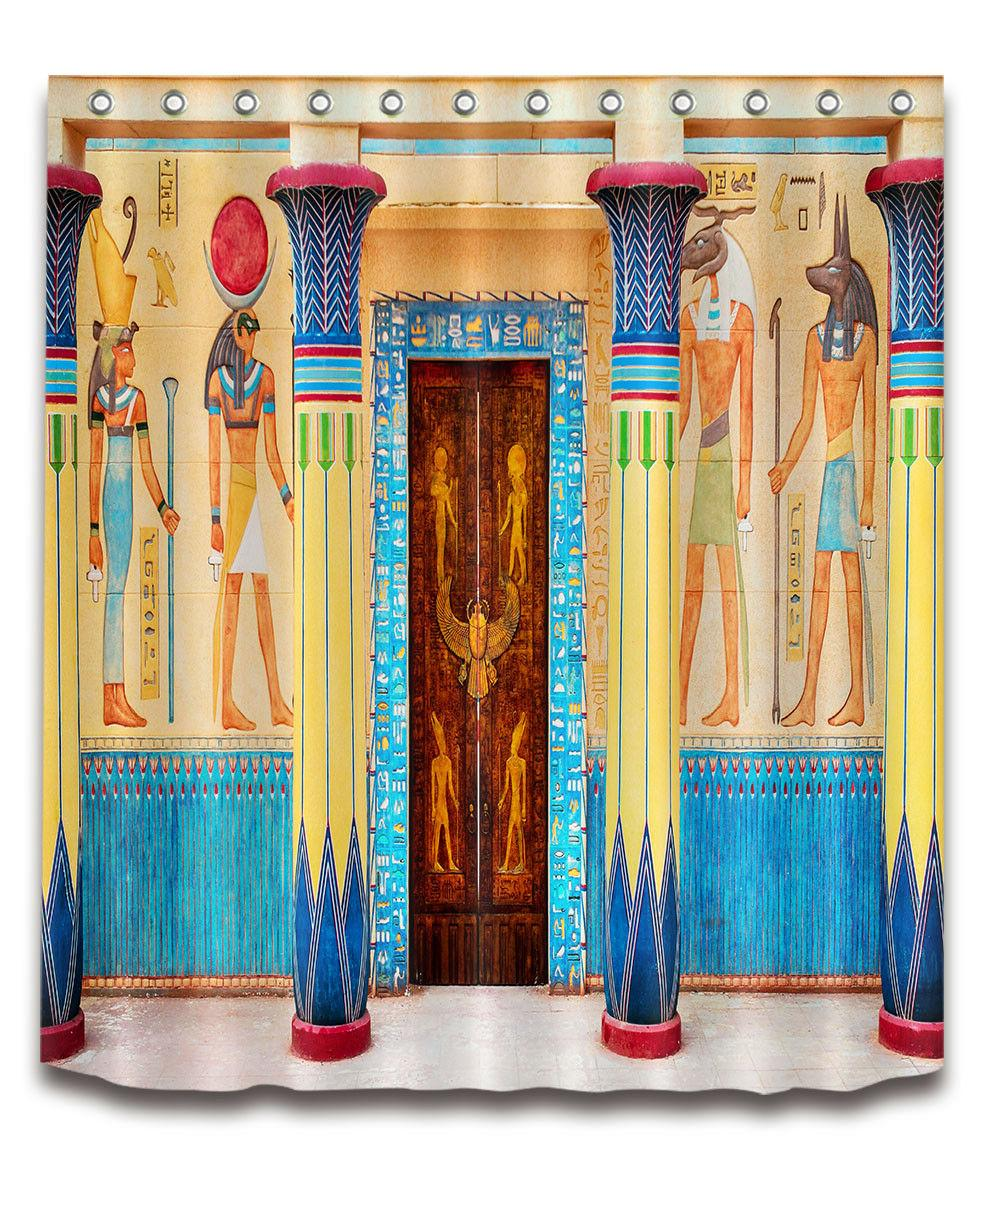 Shower Curtain Egyptian Tomb Door Waterproof Fabric Polyester Bathroom Mat